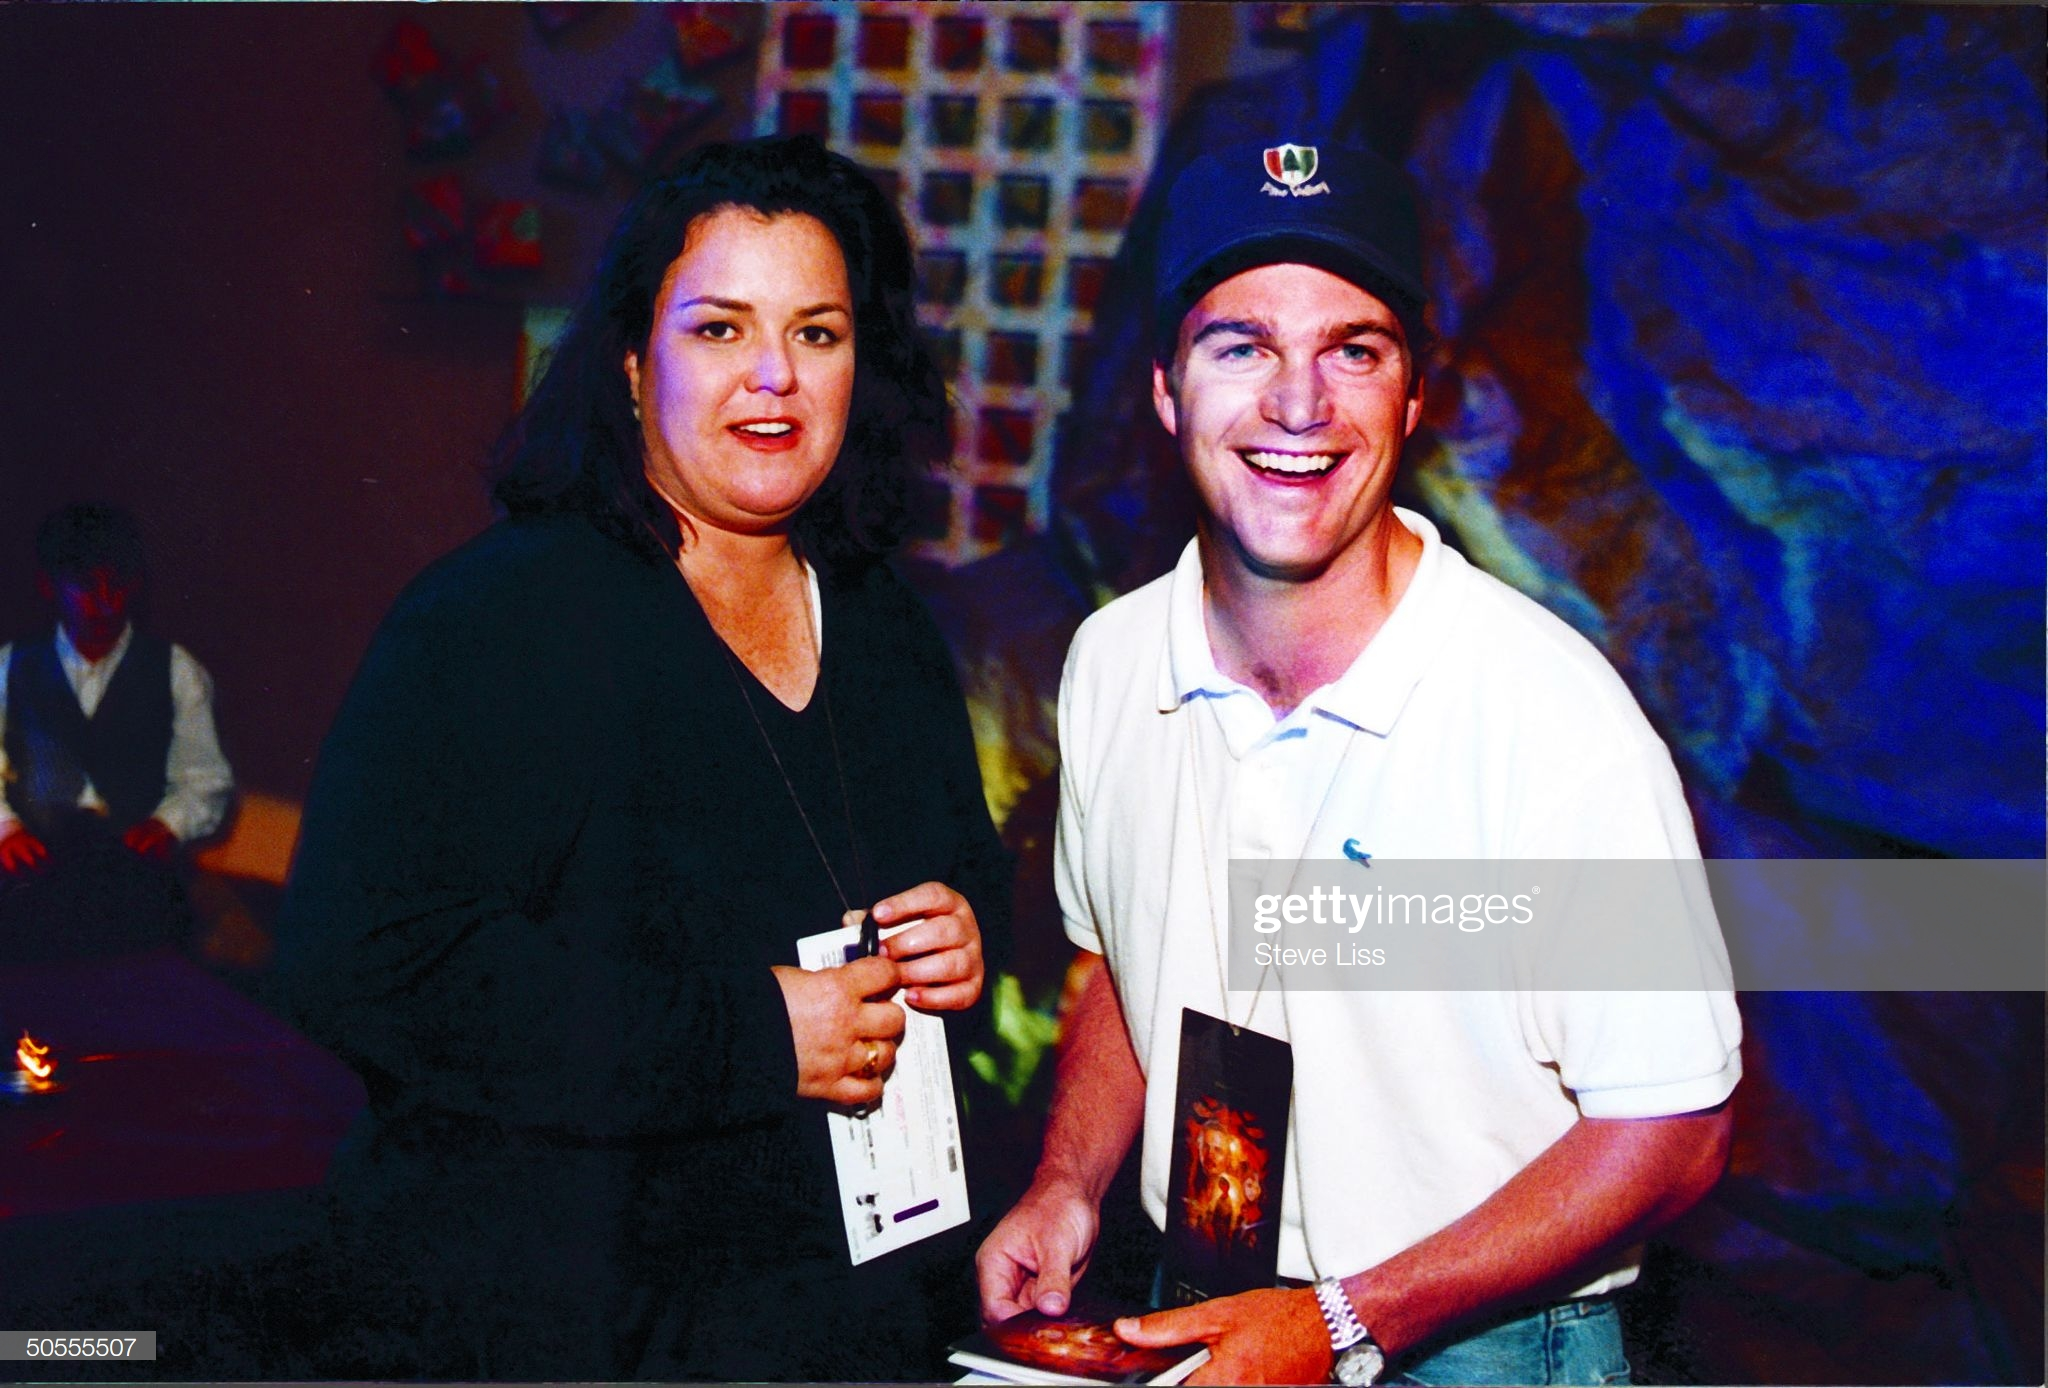 Always two there are… Rosie and actor Chris O'Donnell at the Chicago Charity Premiere - Source:  Getty Images